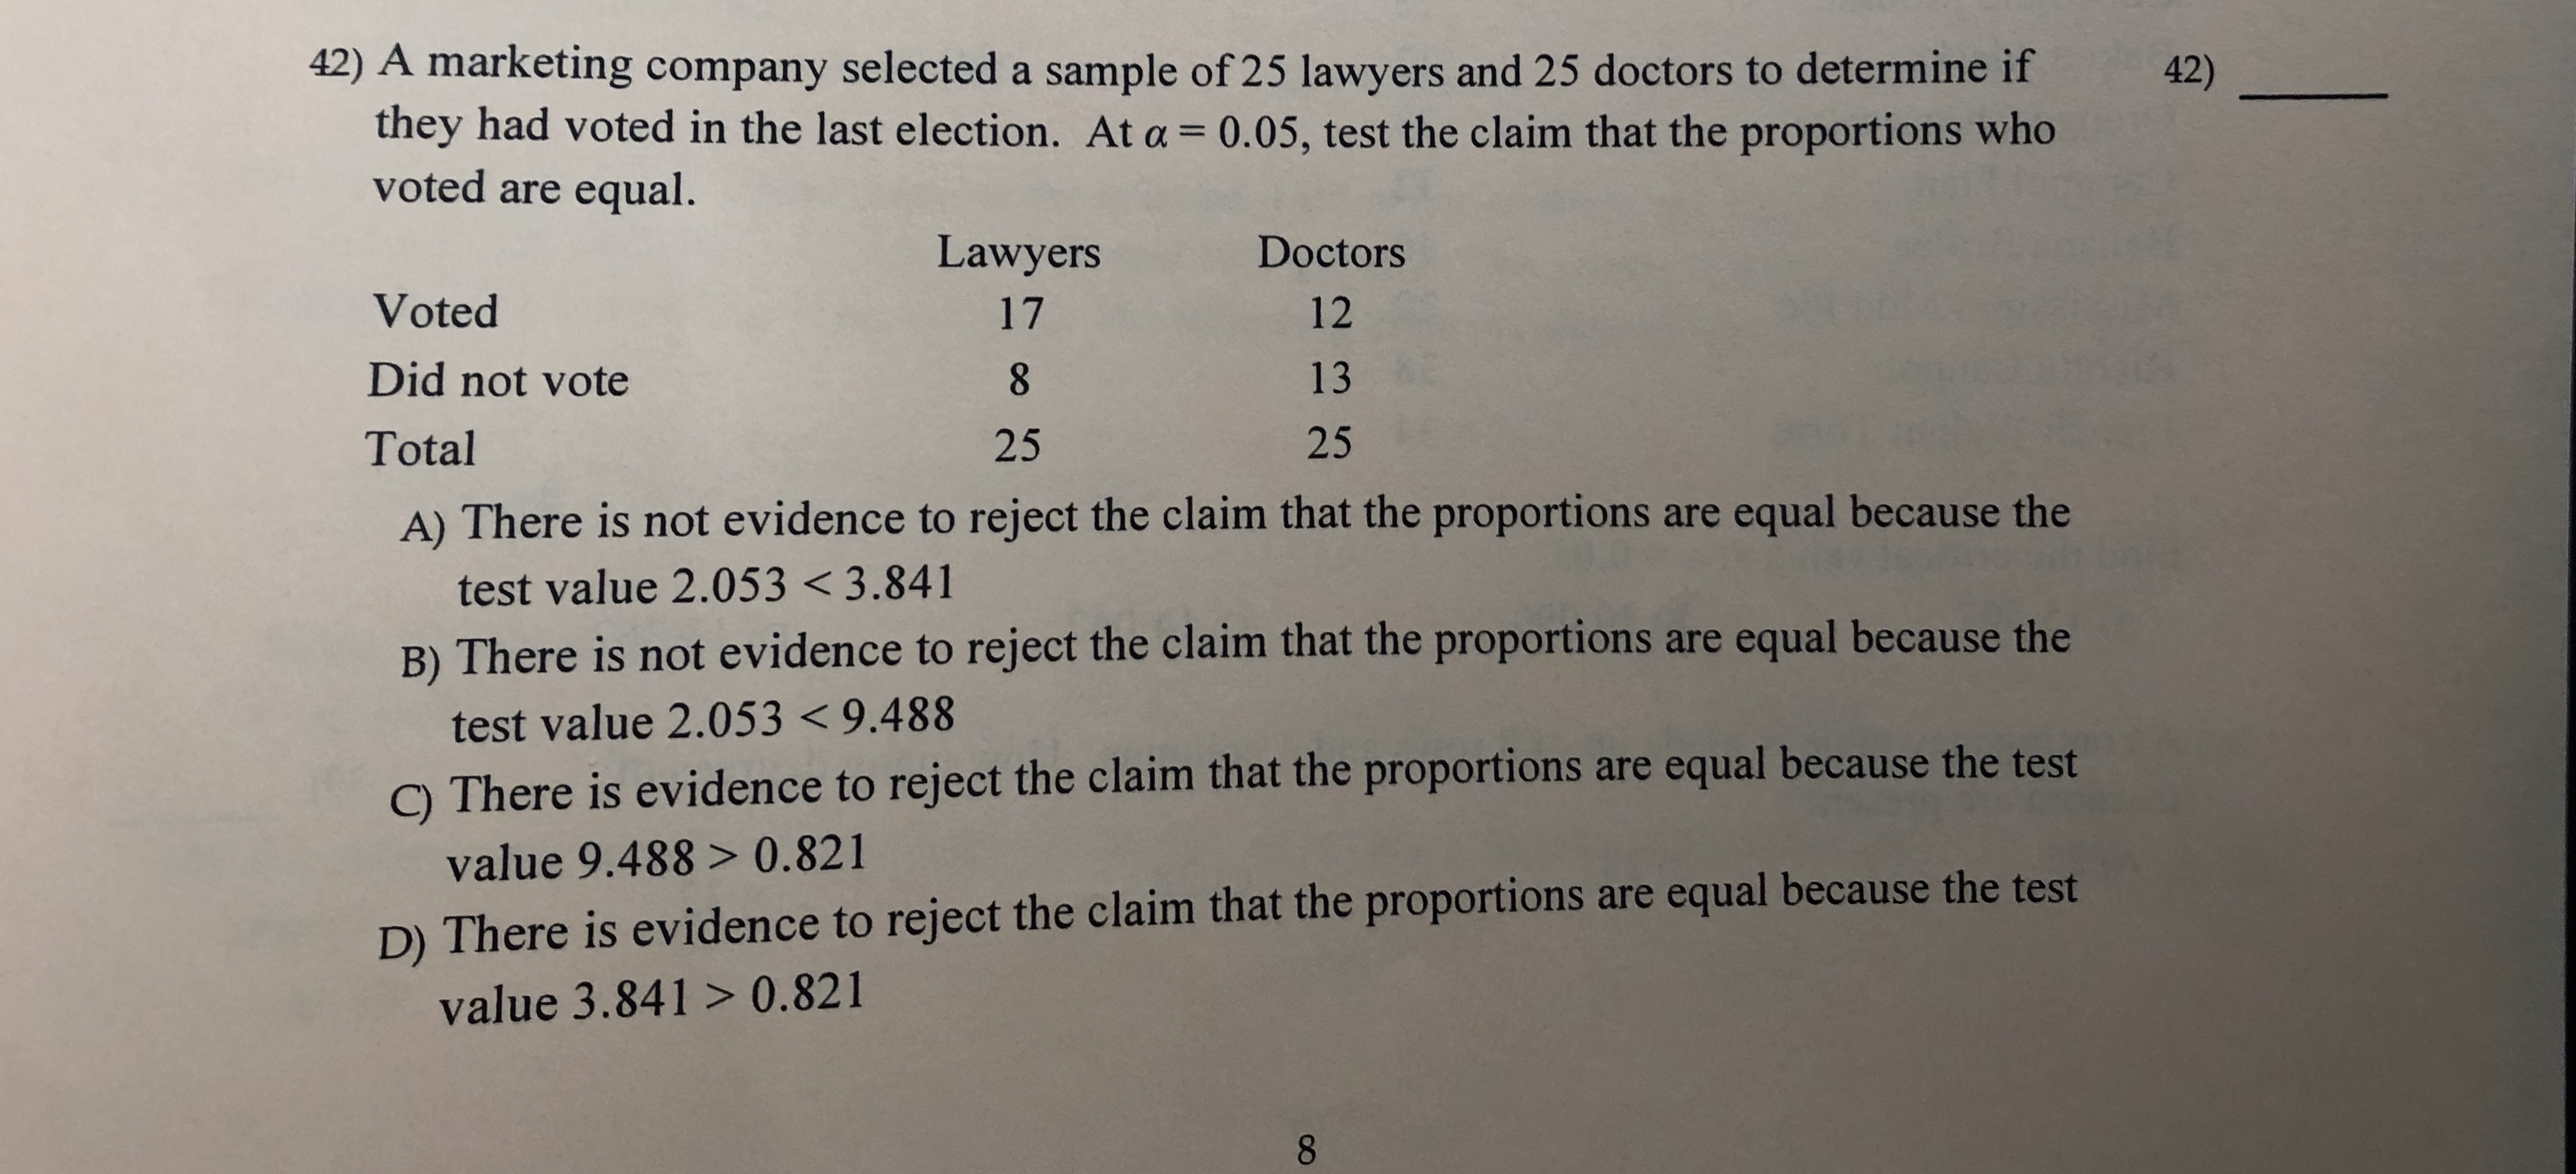 42) A marketing company selected a sample of 25 lawyers and 25 doctors to determine if they had voted in the last election. At a 0.05, test the claim that the proportions who voted are equal. 42) Lawyers Doctors Voted 17 12 13 Did not vote 8 25 25 Total A) There is not evidence to reject the claim that the proportions are equal because the test value 2.053 < 3.841 B) There is not evidence to reject the claim that the proportions are equal because the test value 2.053 < 9.488 ) There is evidence to reject the claim that the proportions are equal because the test value 9.488 > 0.821 D) There is evidence to reject the claim that the proportions are equal because the test value 3.841 > 0.821